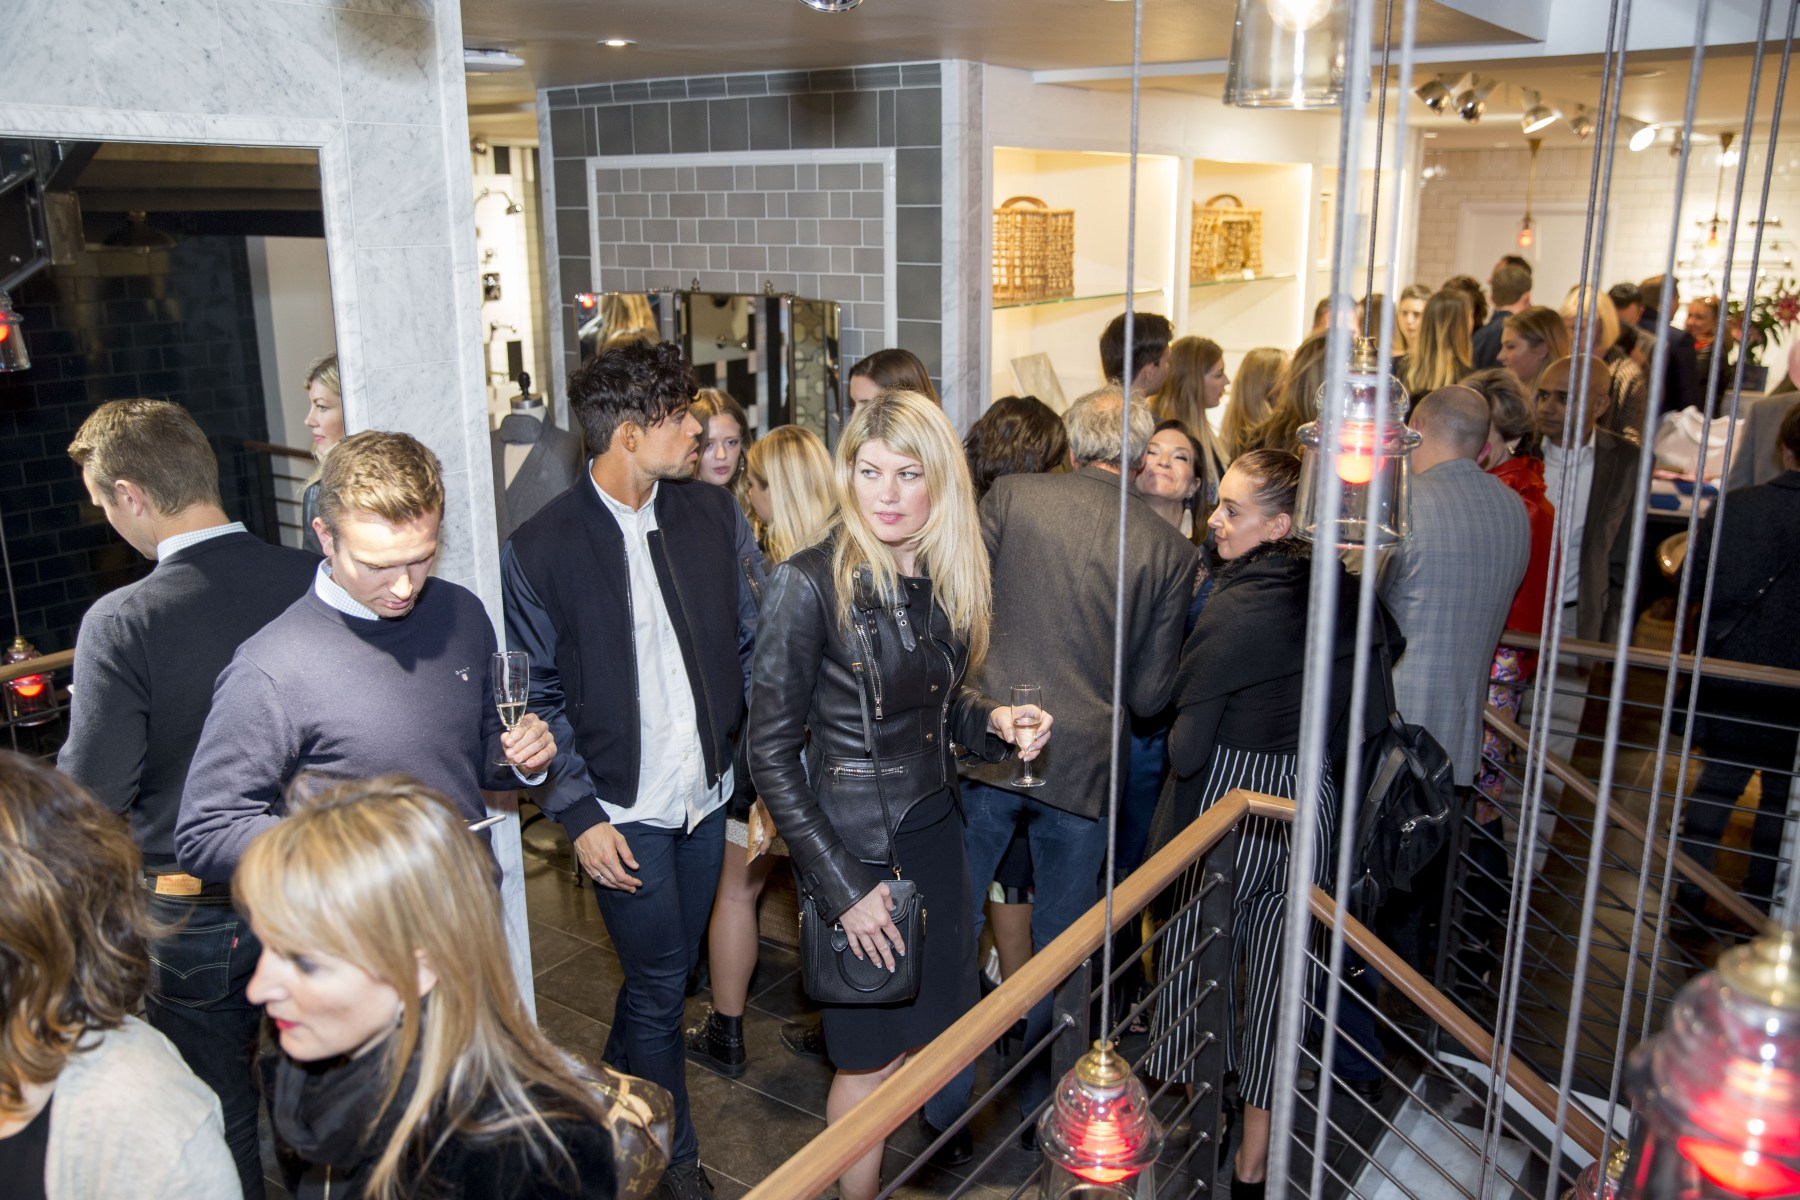 Holiday House Launch Party At Waterworks Showroom on the Kings Road London UK 14th Sept 2007    HOLIDAY HOUSE LONDON LAUNCH party at Waterworks showroom, London Uk in prep for the exhibition in NOVEMBER 2017 Celebrating its 10 year anniversary, Holiday House is coming to London for its first edition outside of the US in November 2017. Founded by Iris Dankner and co-chaired by interior designer Rachel Laxer and breast cancer survivor and philanthropist Joyce Misrahi, Holiday House London is an interior design exhibition which raises crucial funds for the prevention and cure of breast cancer. Proceeds from all ticket sales benefit The Breast Cancer Re- search Foundation® (BCRF).  assistant@holidayhouselondon.co.uk molly@alexandrapr.com  Photo©vickicouchman vickicouchman.com 07957226911